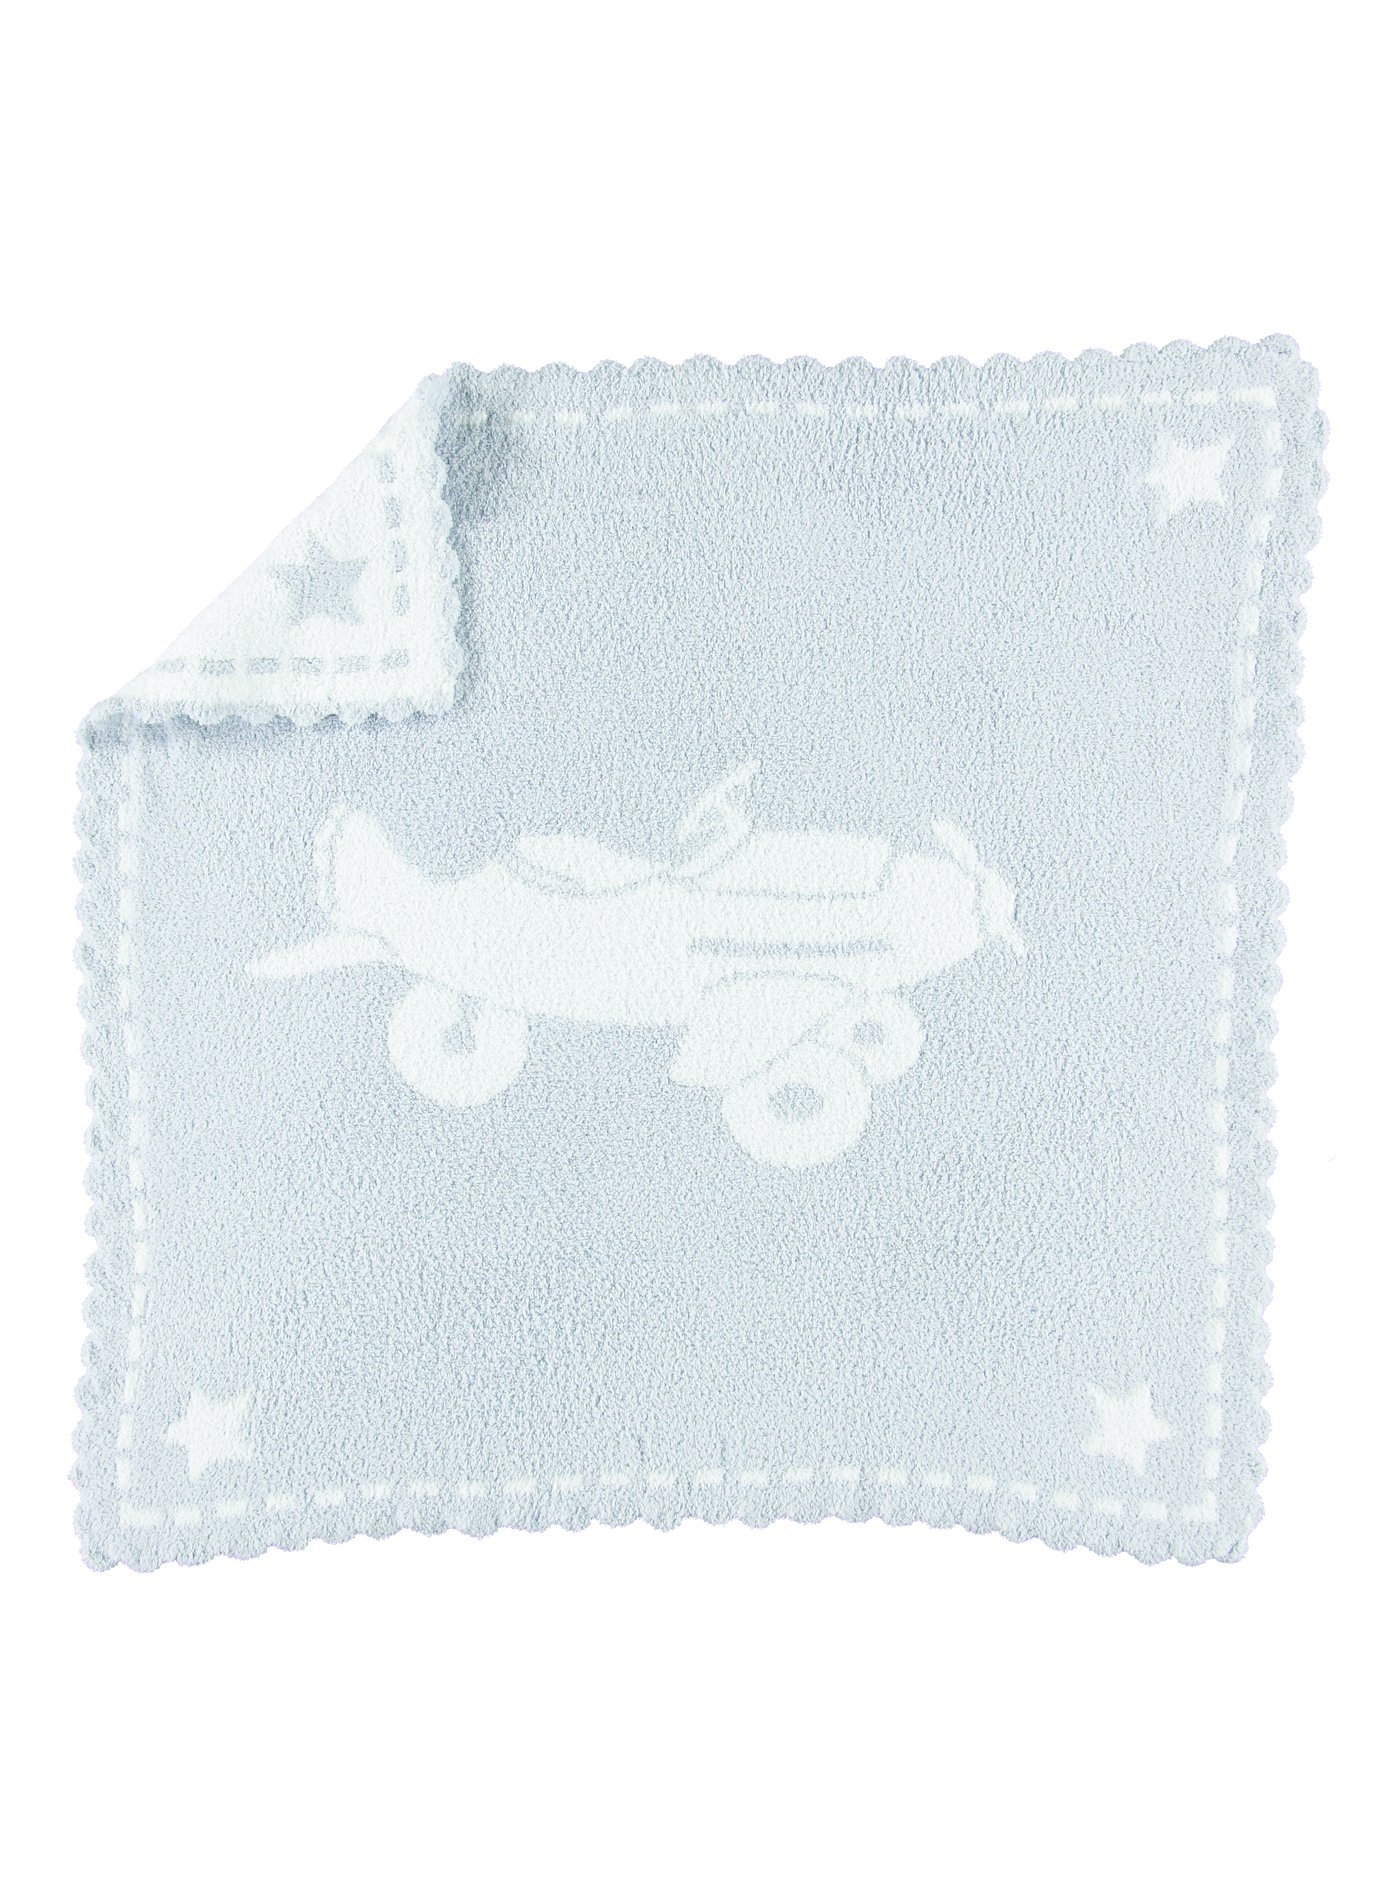 Barefoot Dreams CozyChic Scalloped Baby Receiving Blanket - Blue & White 30x 32 by Barefoot Dreams